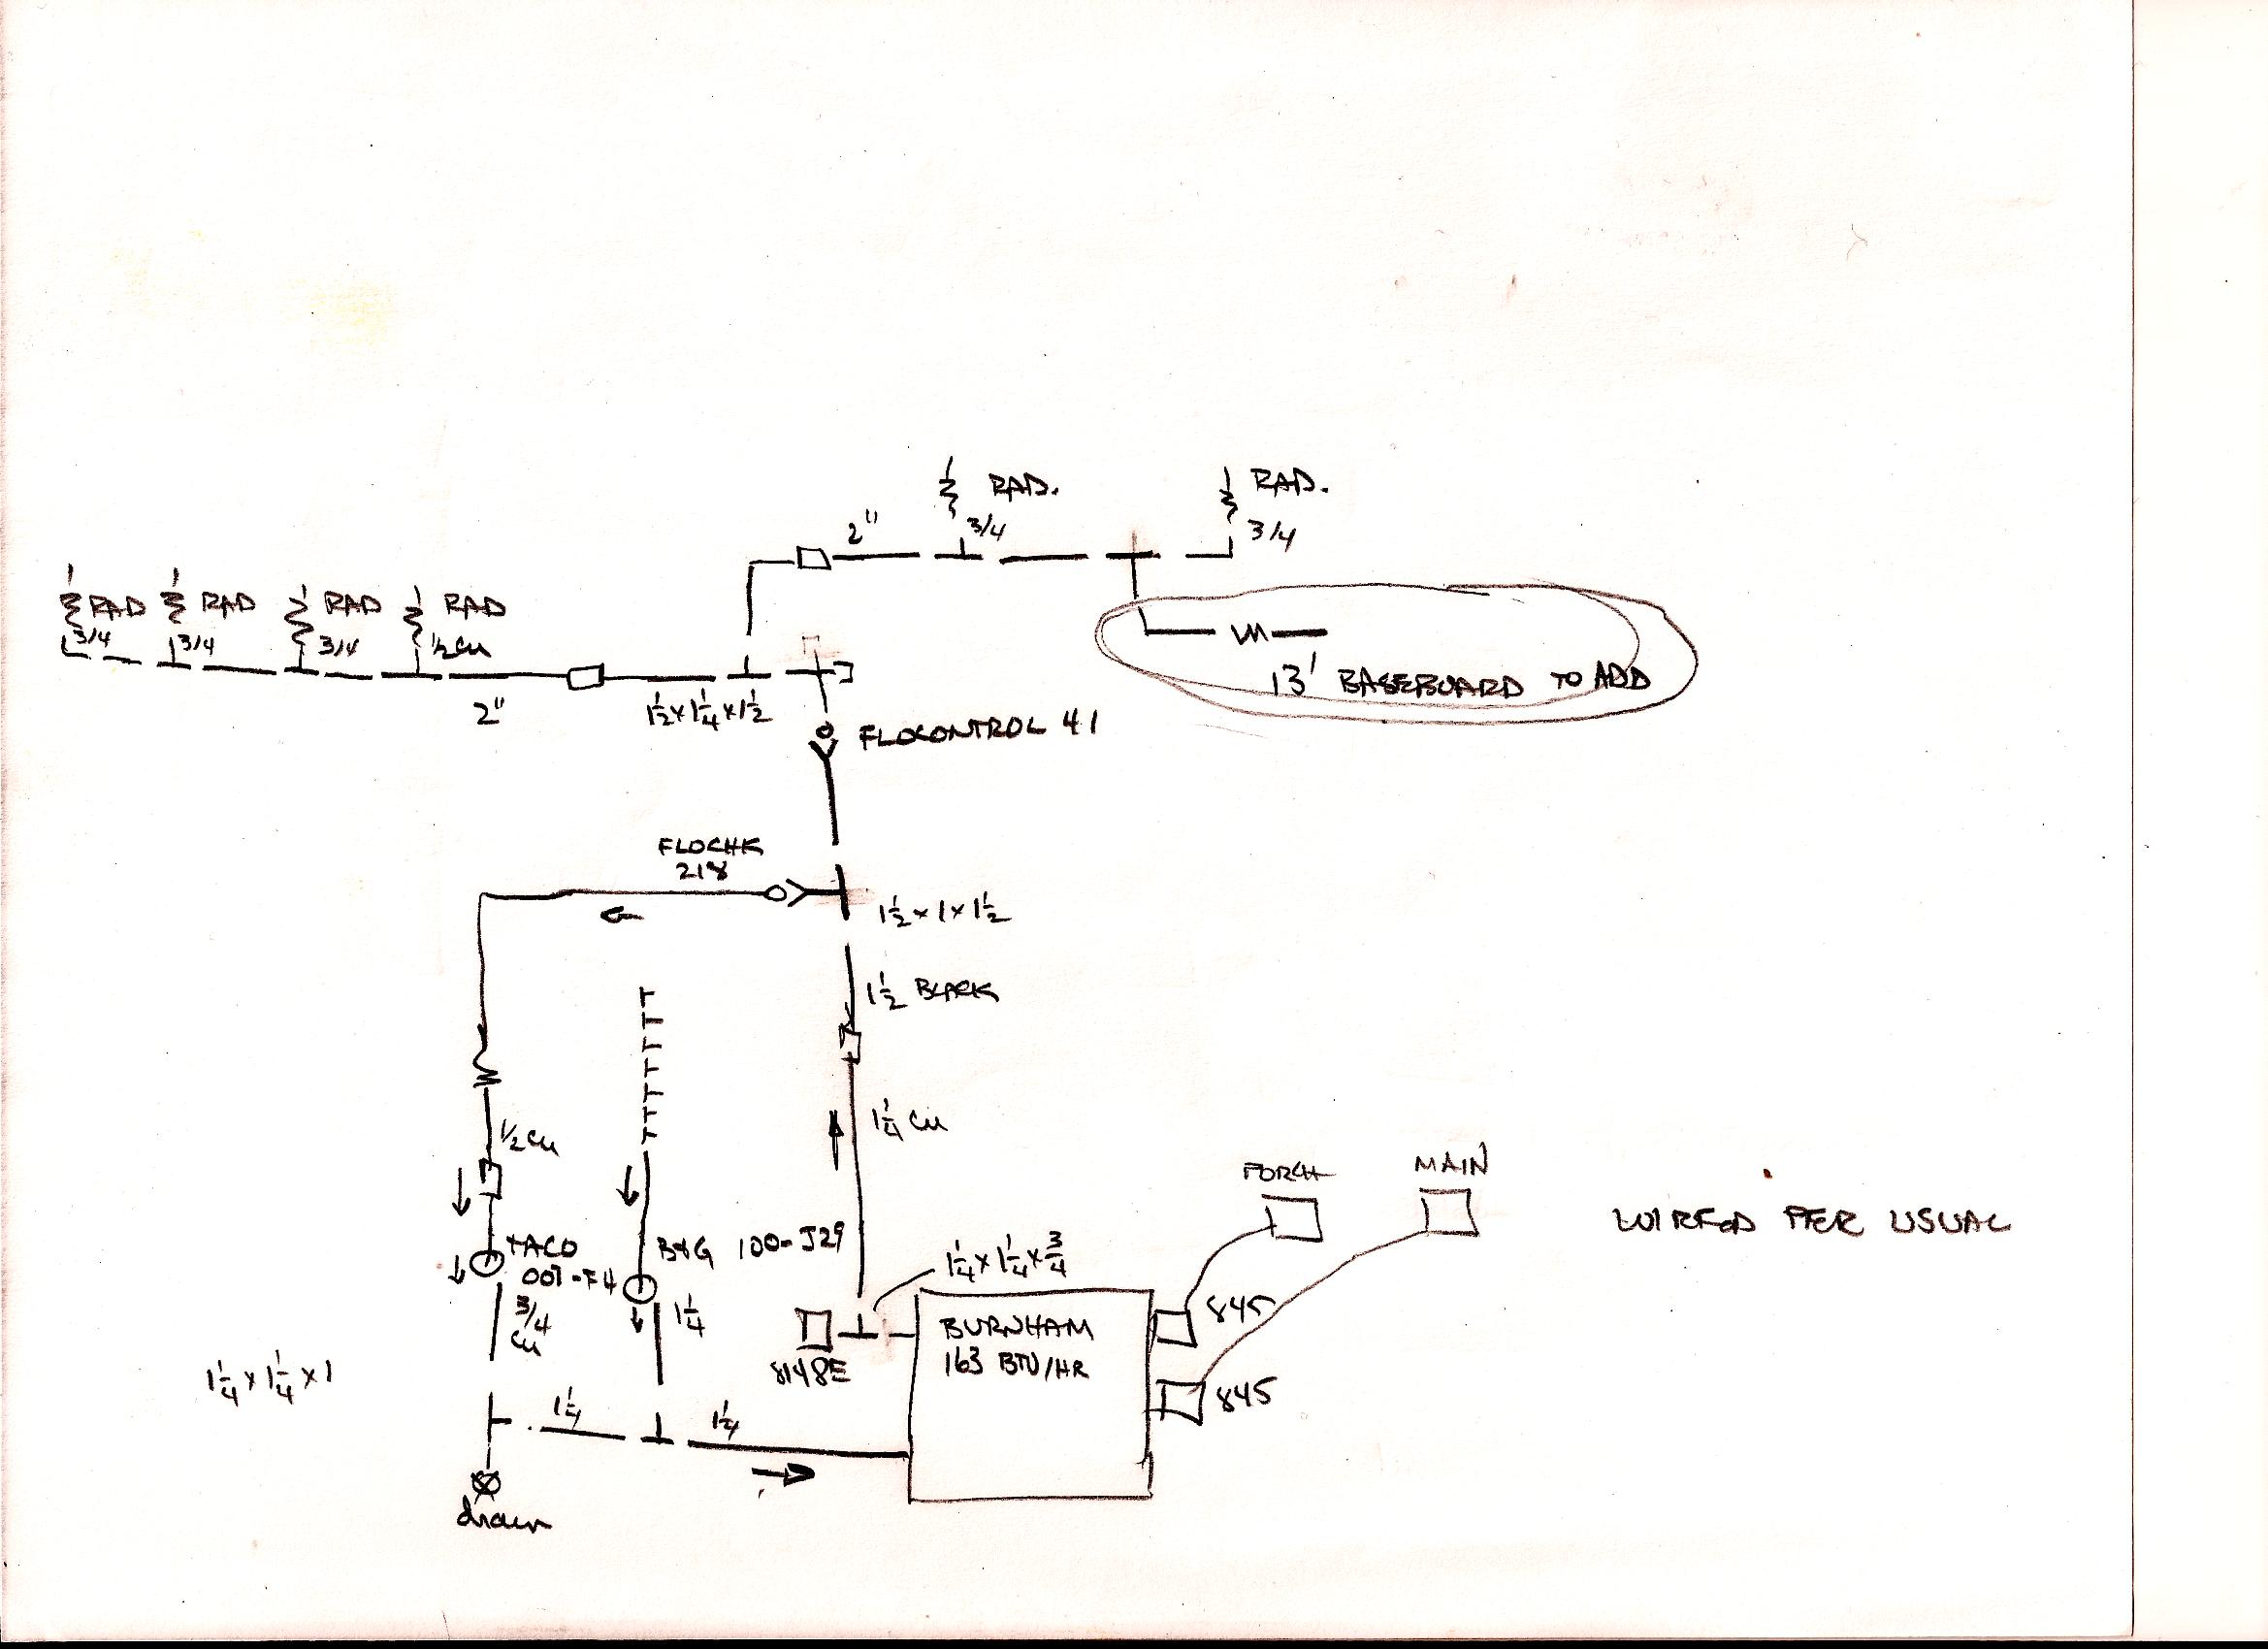 boiler01?resize=665%2C484&ssl=1 zone valve wiring installation & instructions guide to heating honeywell v8043f1036 wiring diagram at gsmx.co